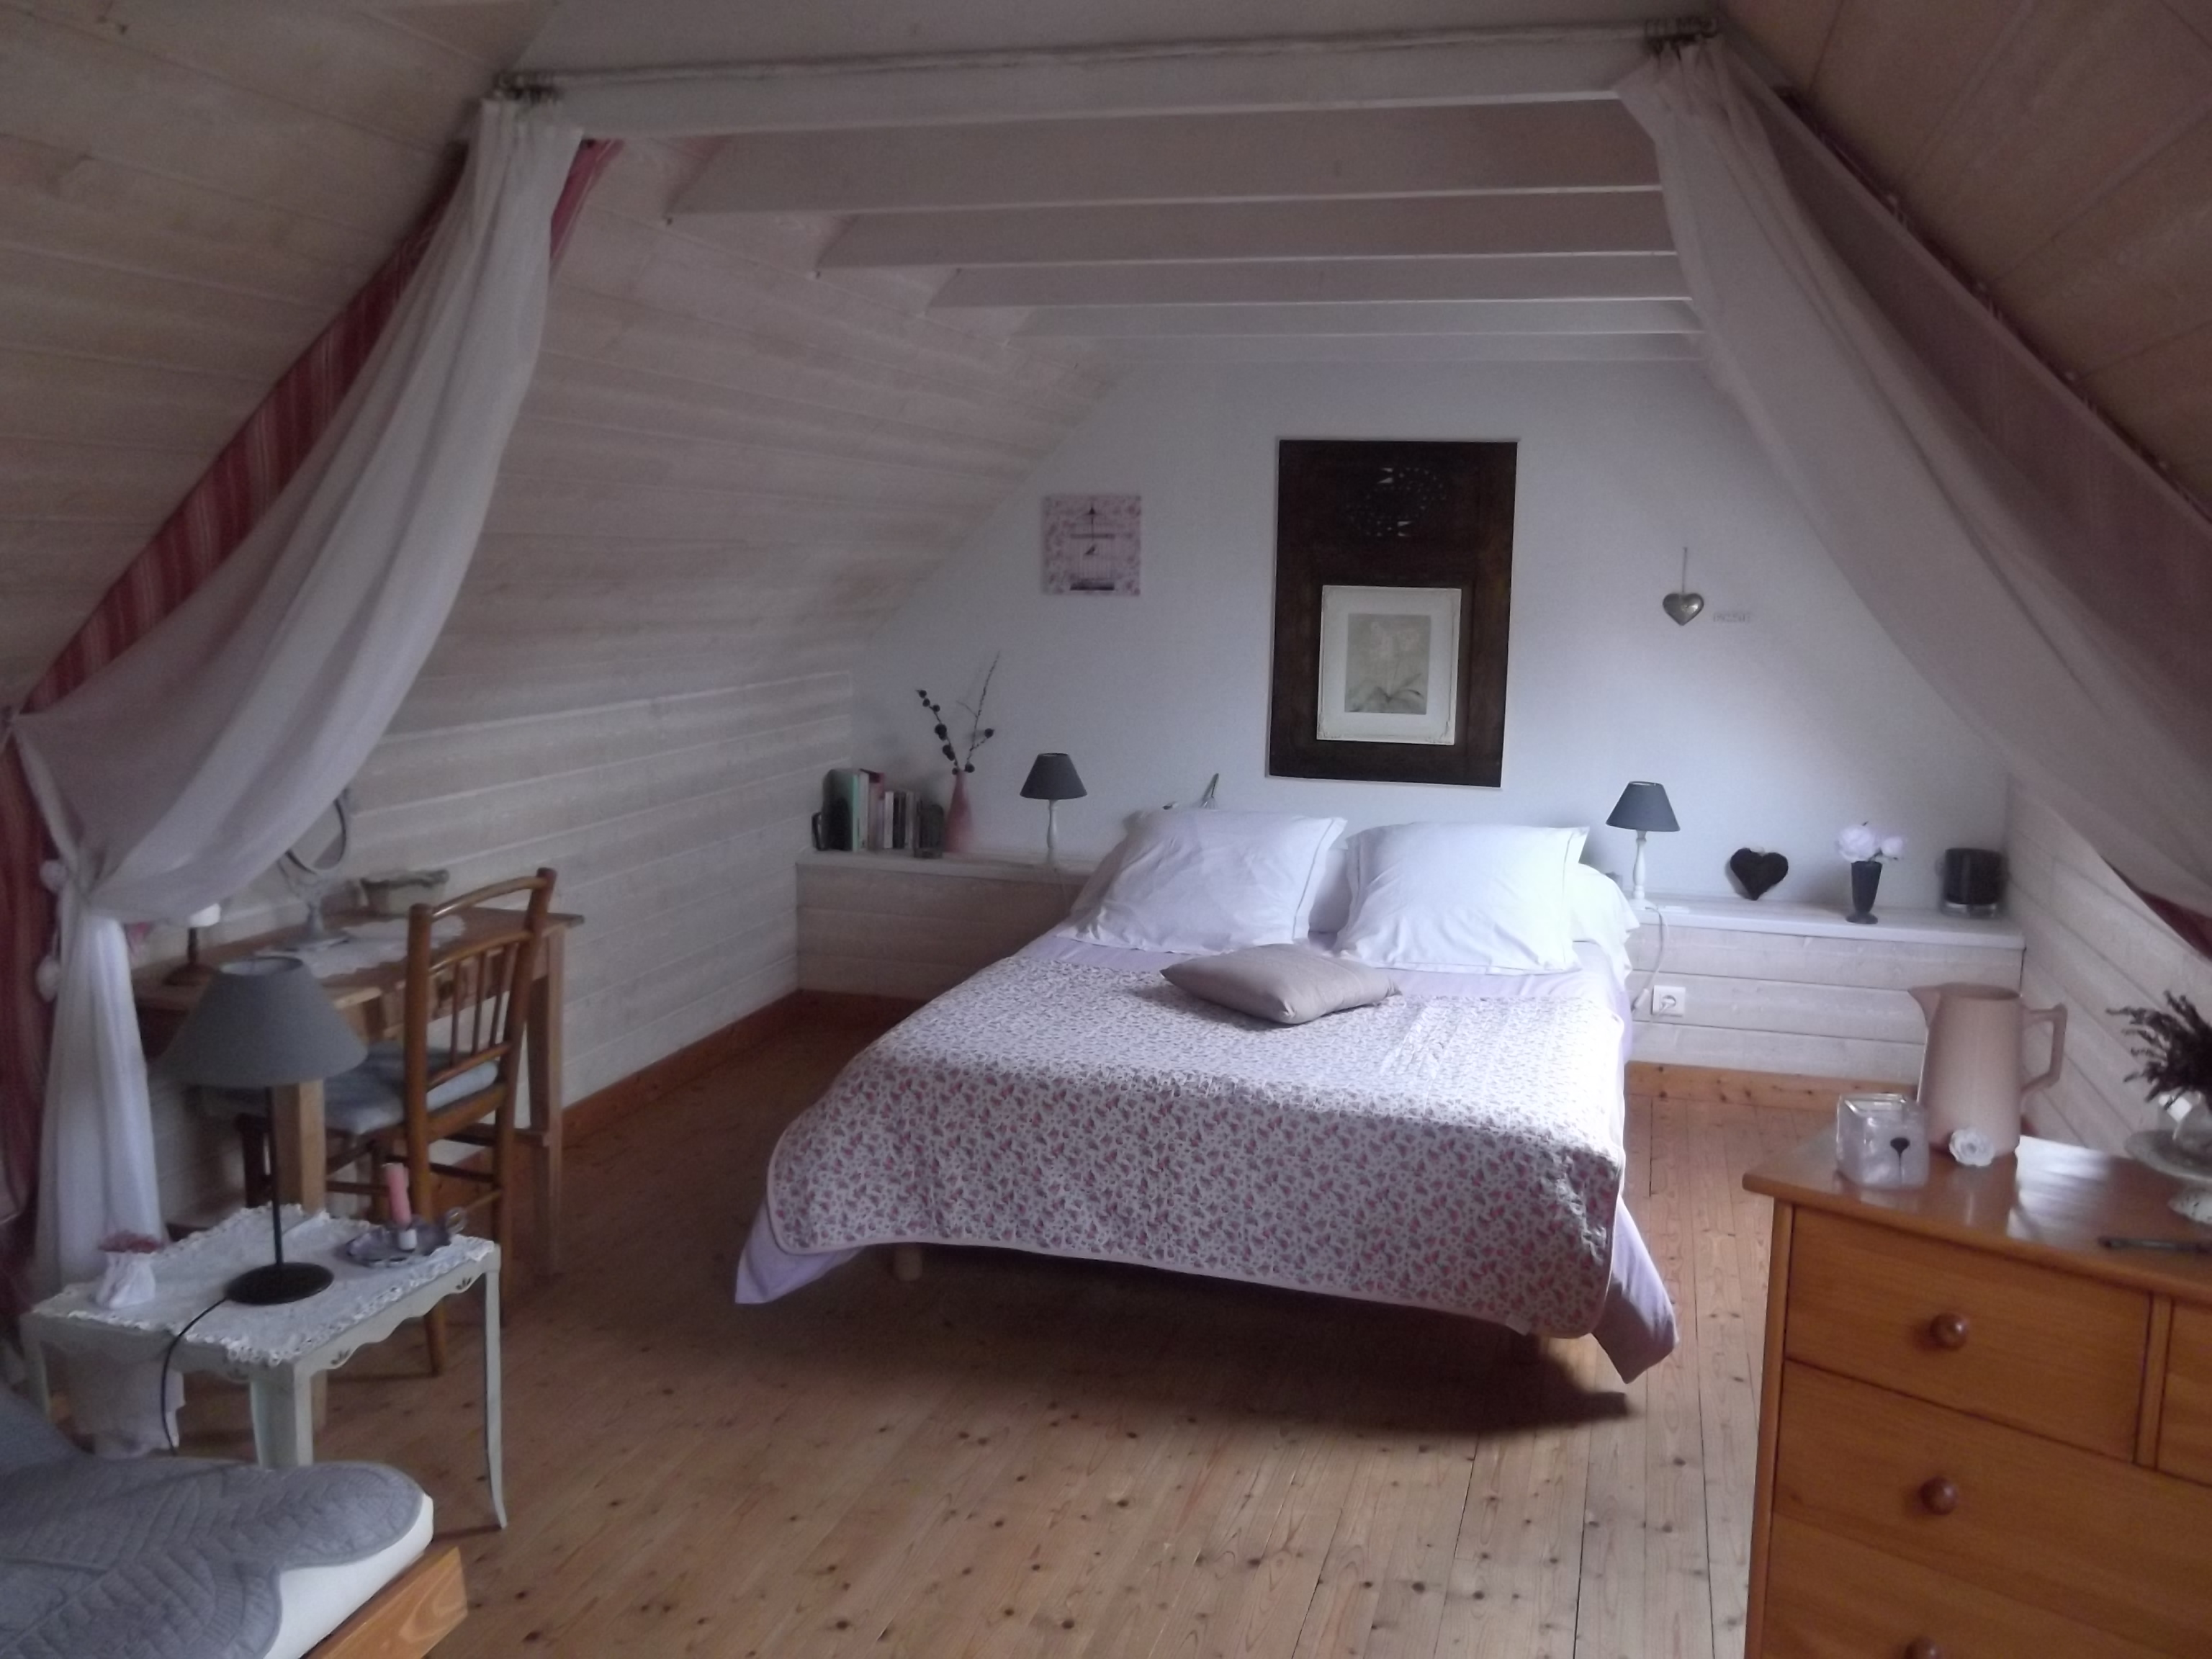 Deco chambres d hotes - Chambres d hotes vouvray ...